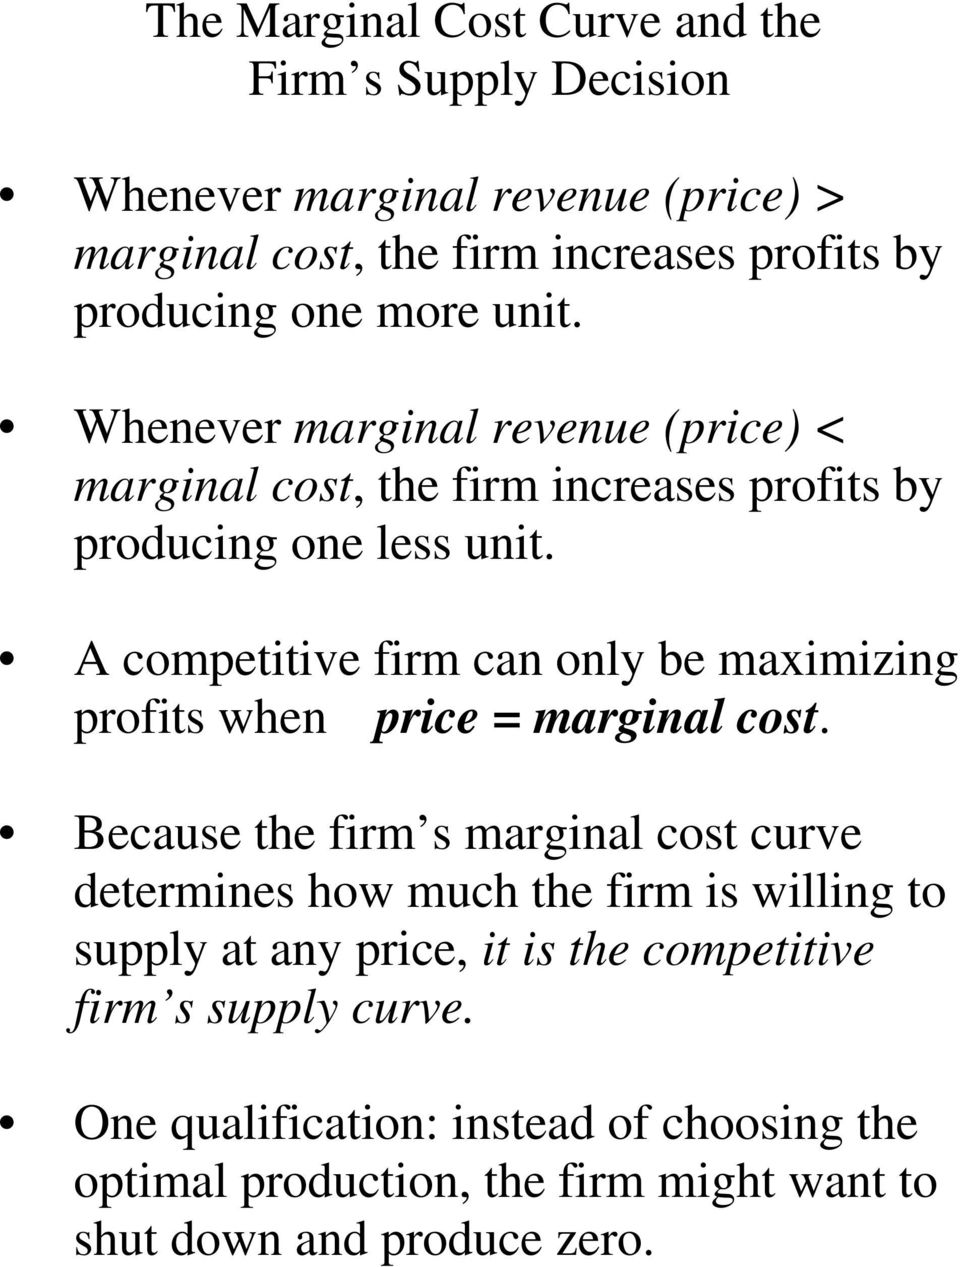 A competitive firm can only be maximizing profits when price = marginal cost.